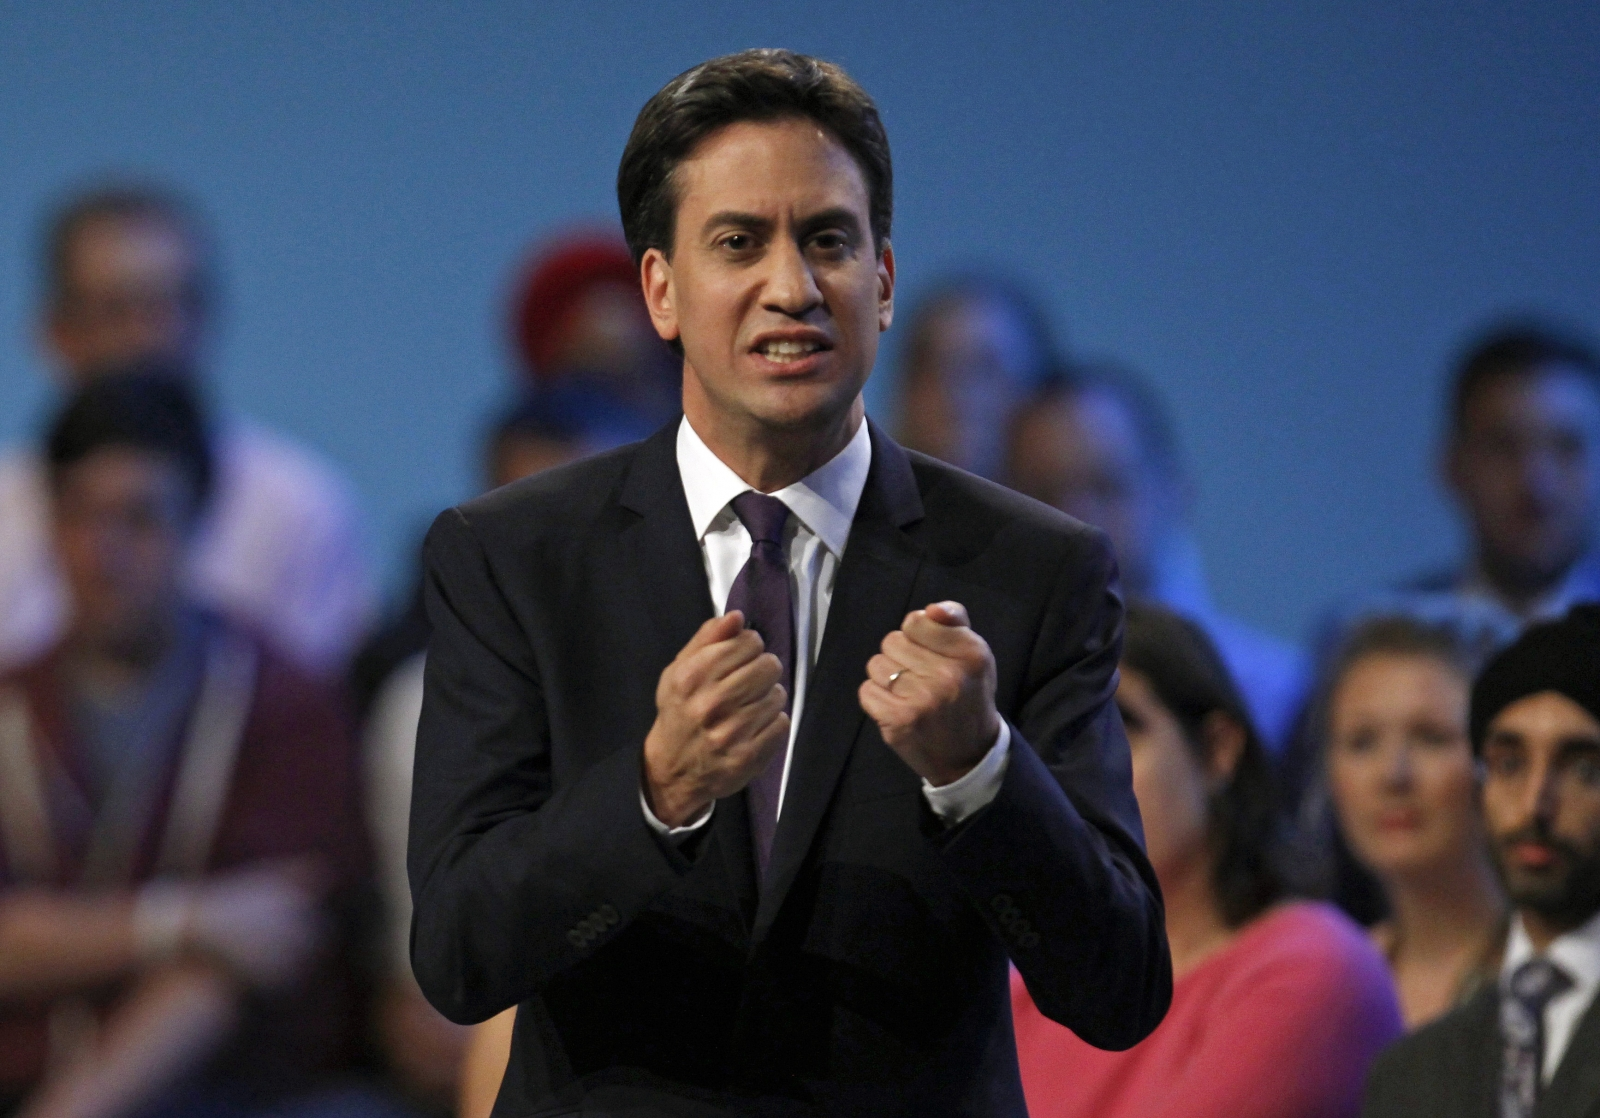 Britain's opposition Labour party leader Ed Miliband